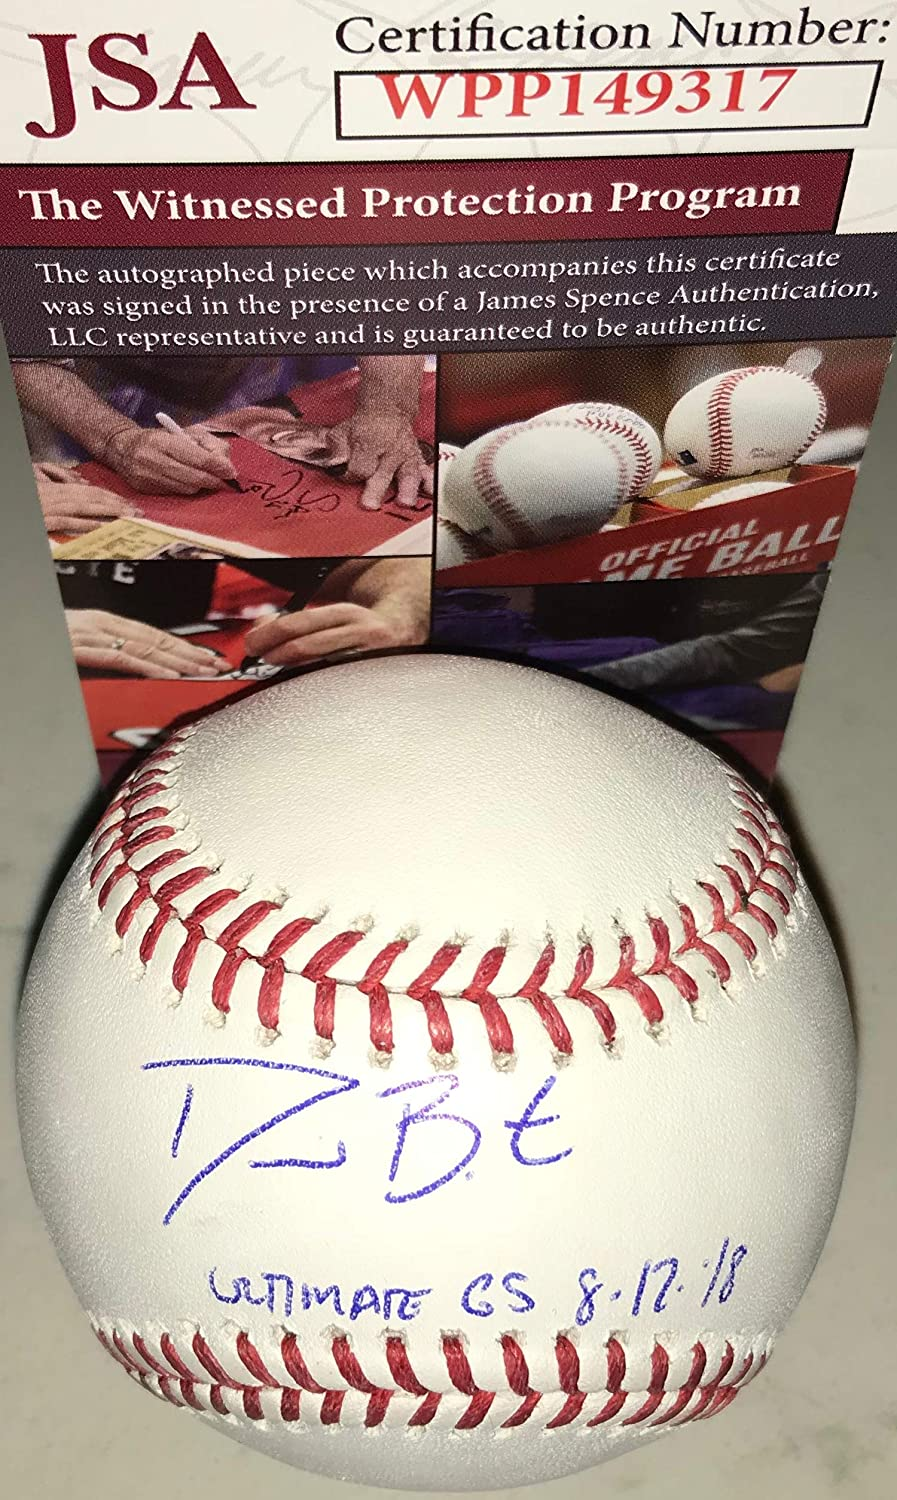 David Bote Chicago Cubs Autographed Signed Official Major League Baseball JSA WITNESS COA Ultimate GS 8-12-18 SidsGraphs